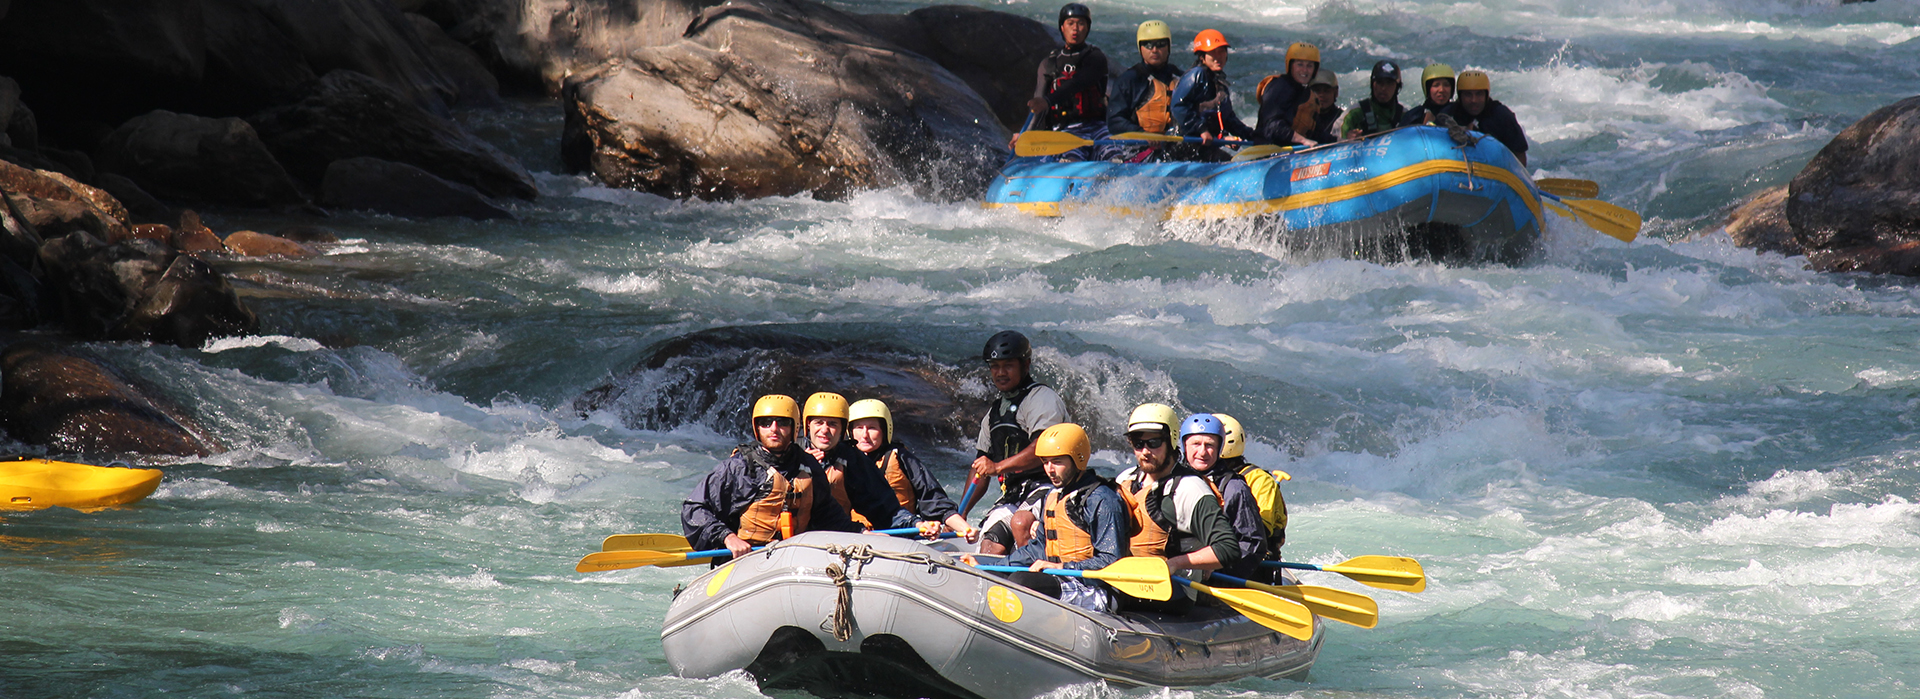 Rafting on the river Jiu